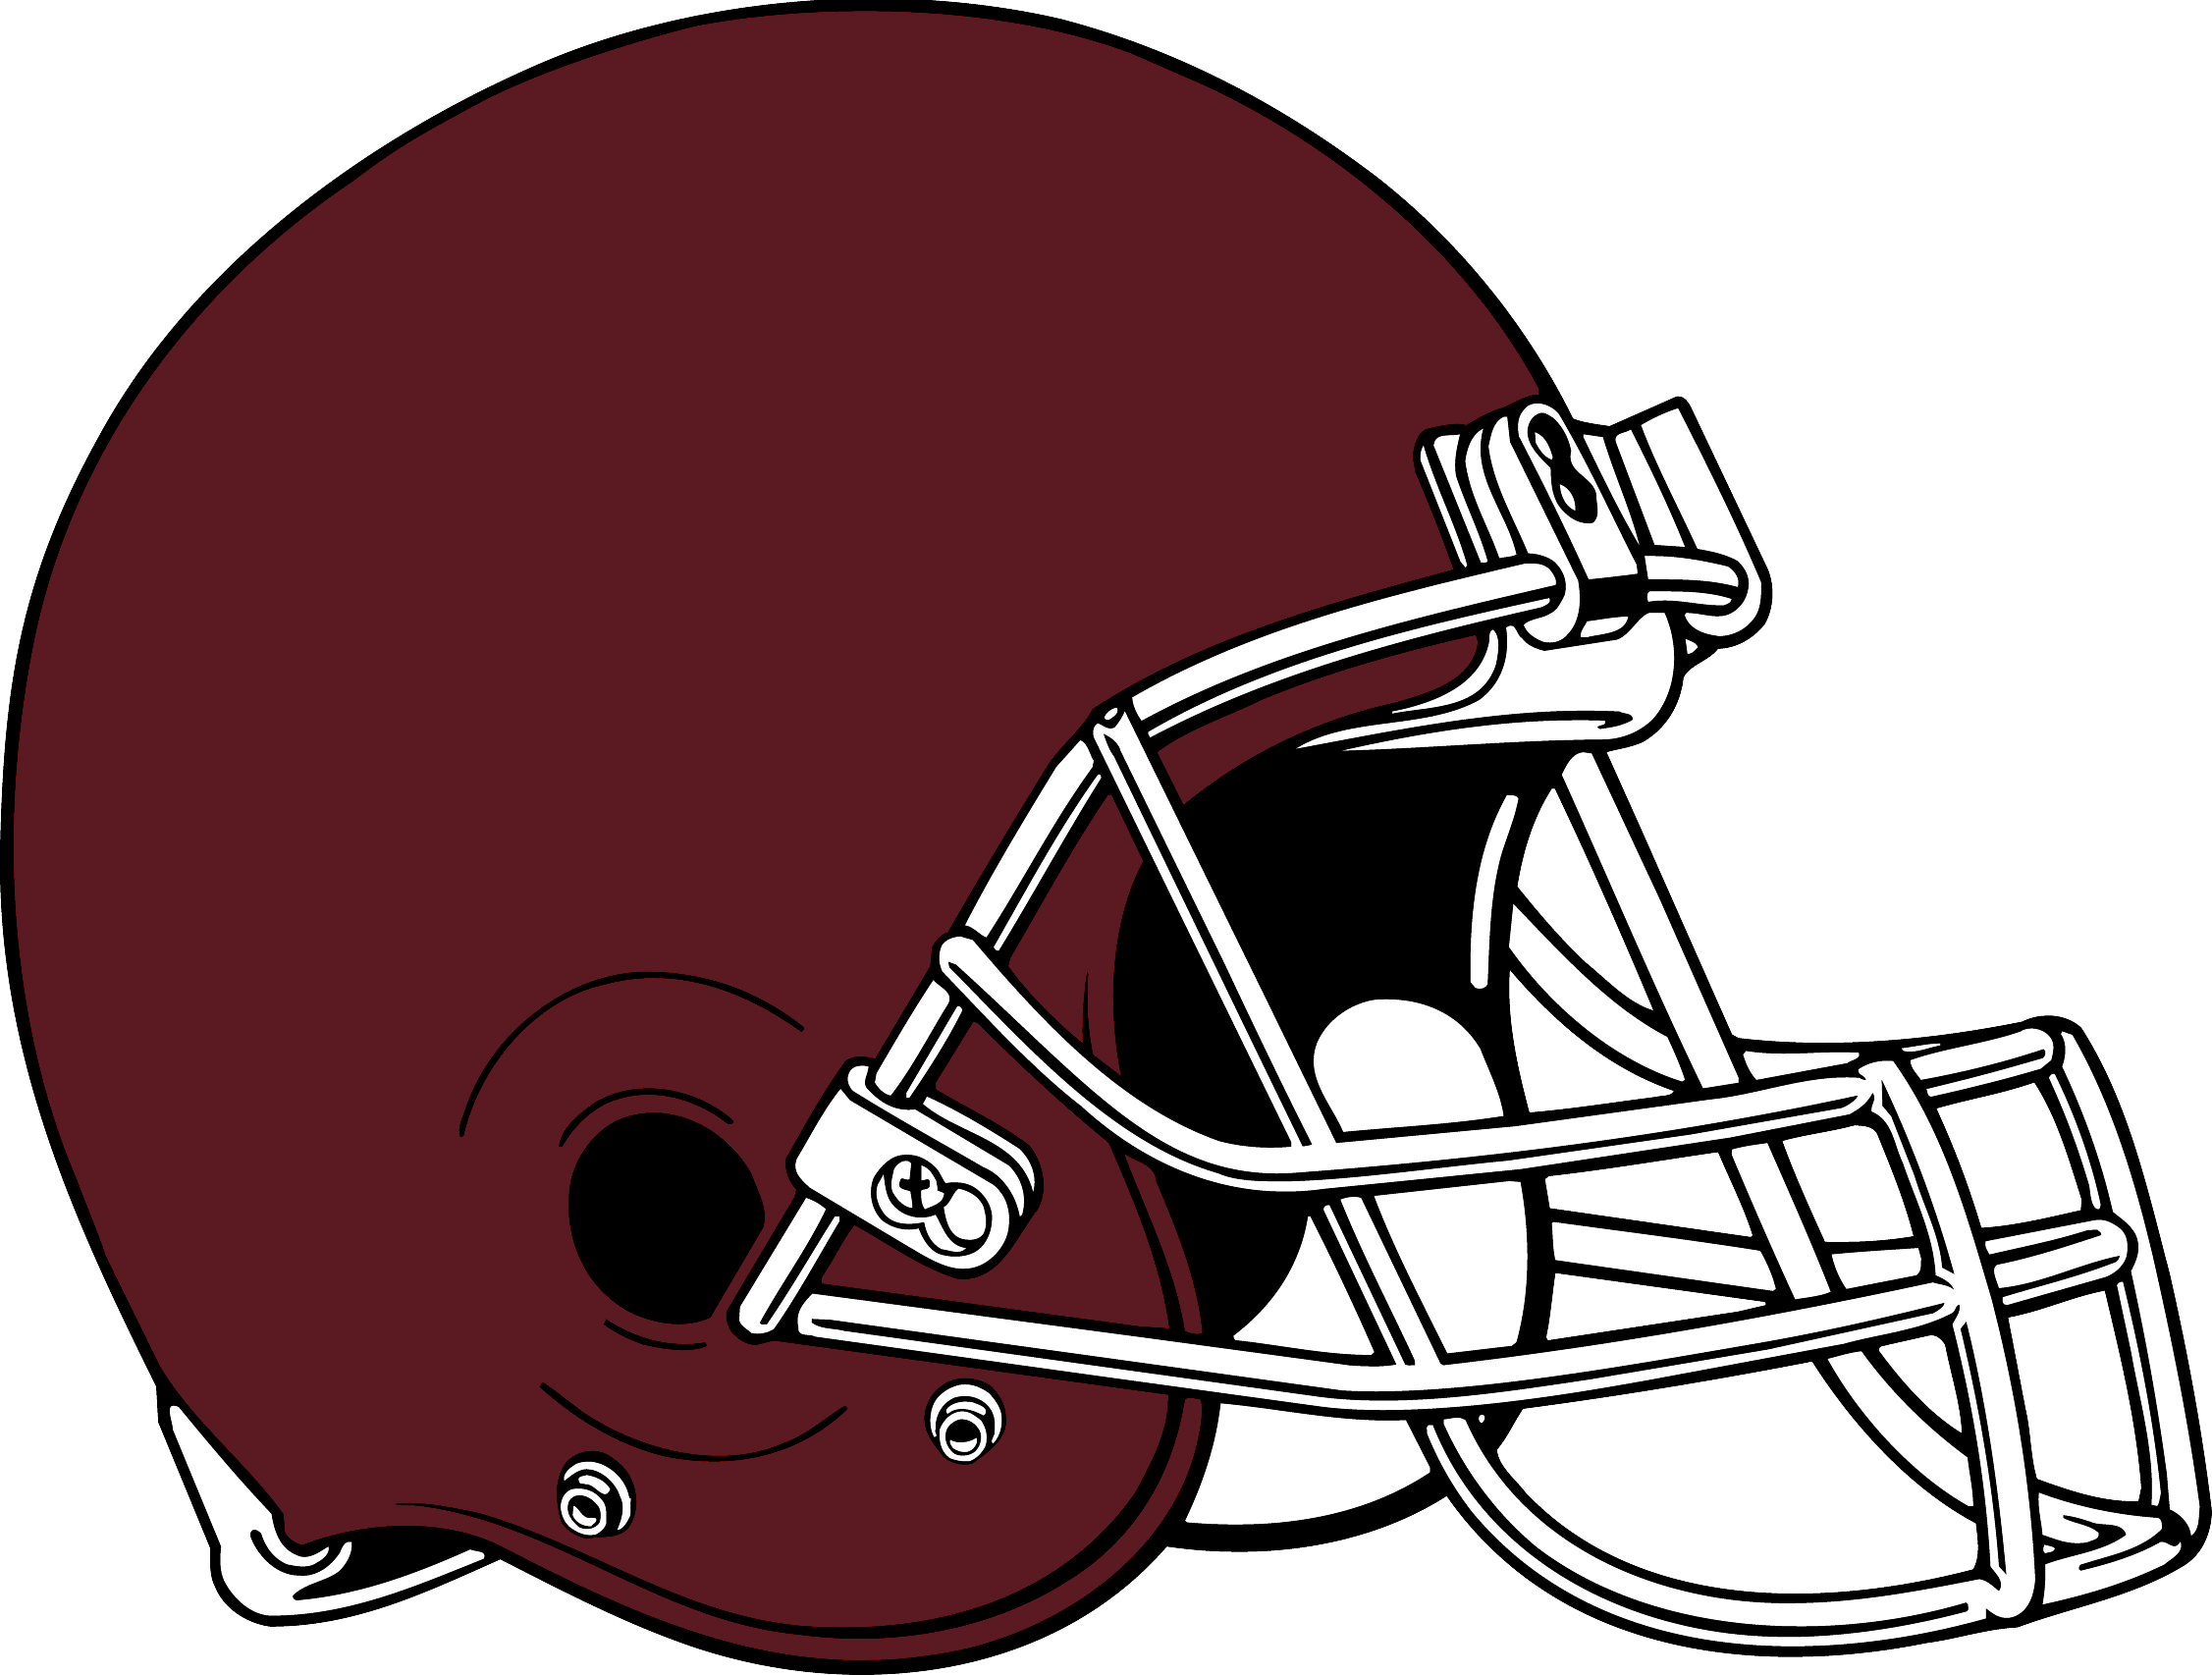 Maroon clipart football helmet Traverse Grand Academy Project Grand